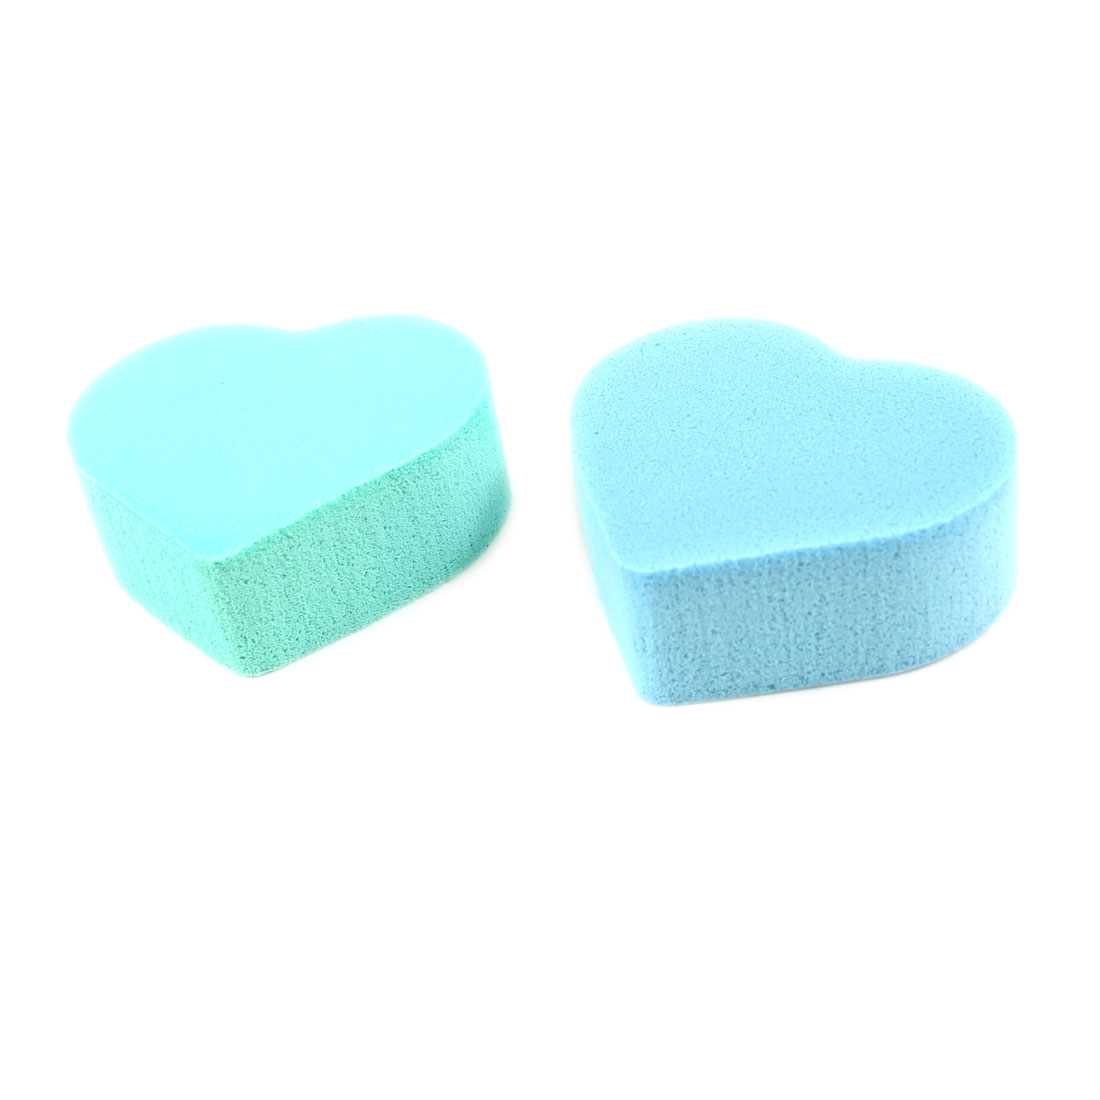 2 Pcs Green Blue Soft Sponge Heart Designed Facial Powder Puff for Ladies